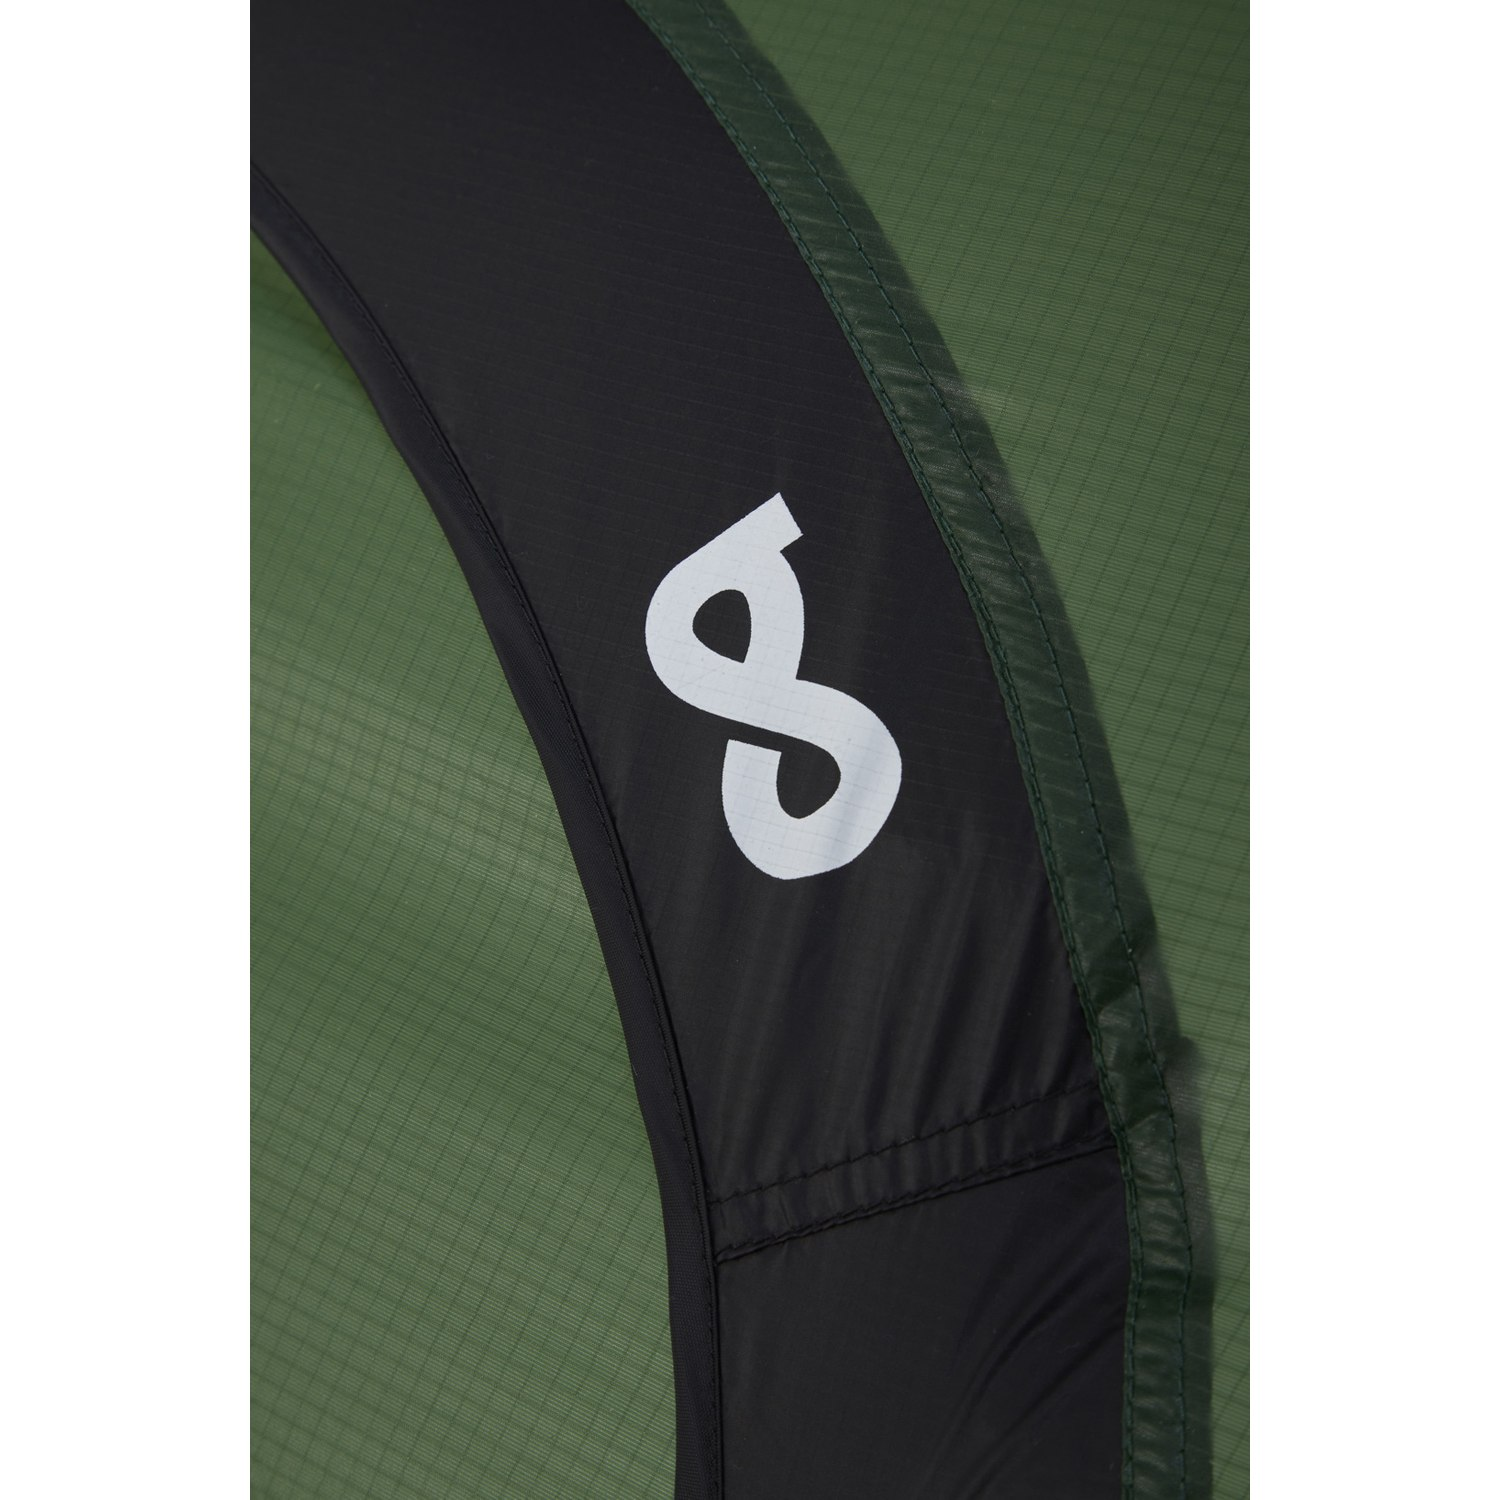 Image of Wechsel Tempest 3 - Tent - Green